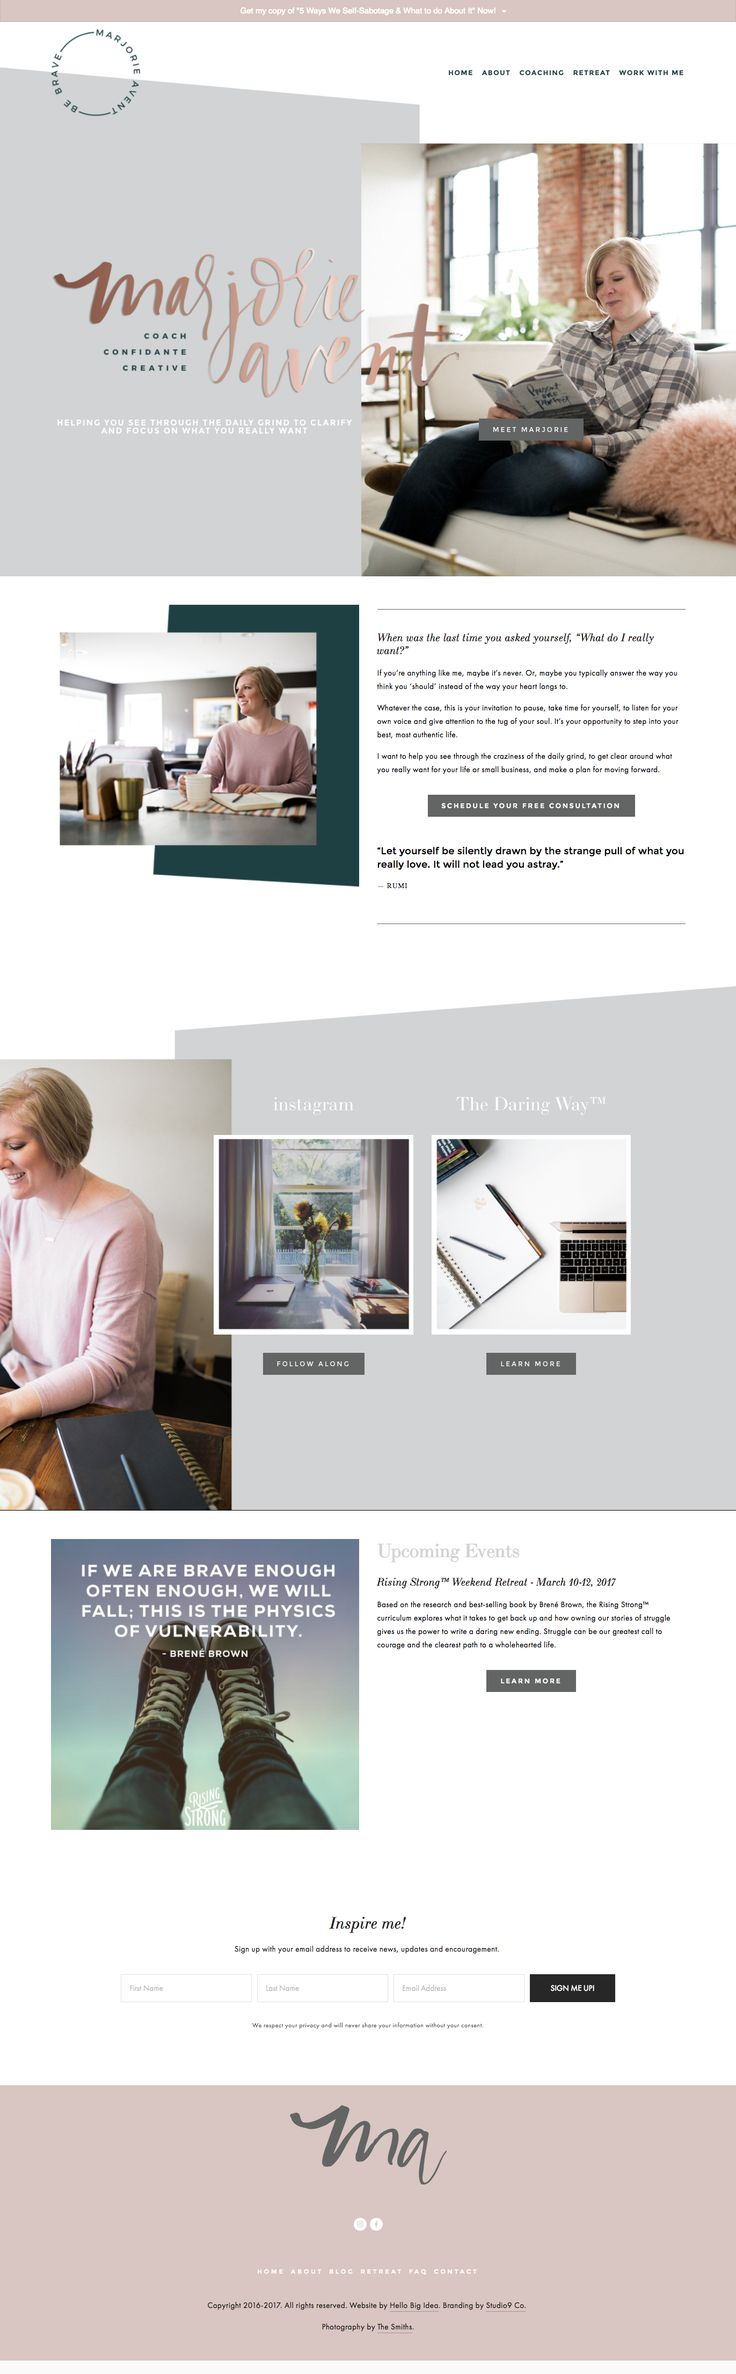 Custom Squarespace Site Design for Marjorie Avent